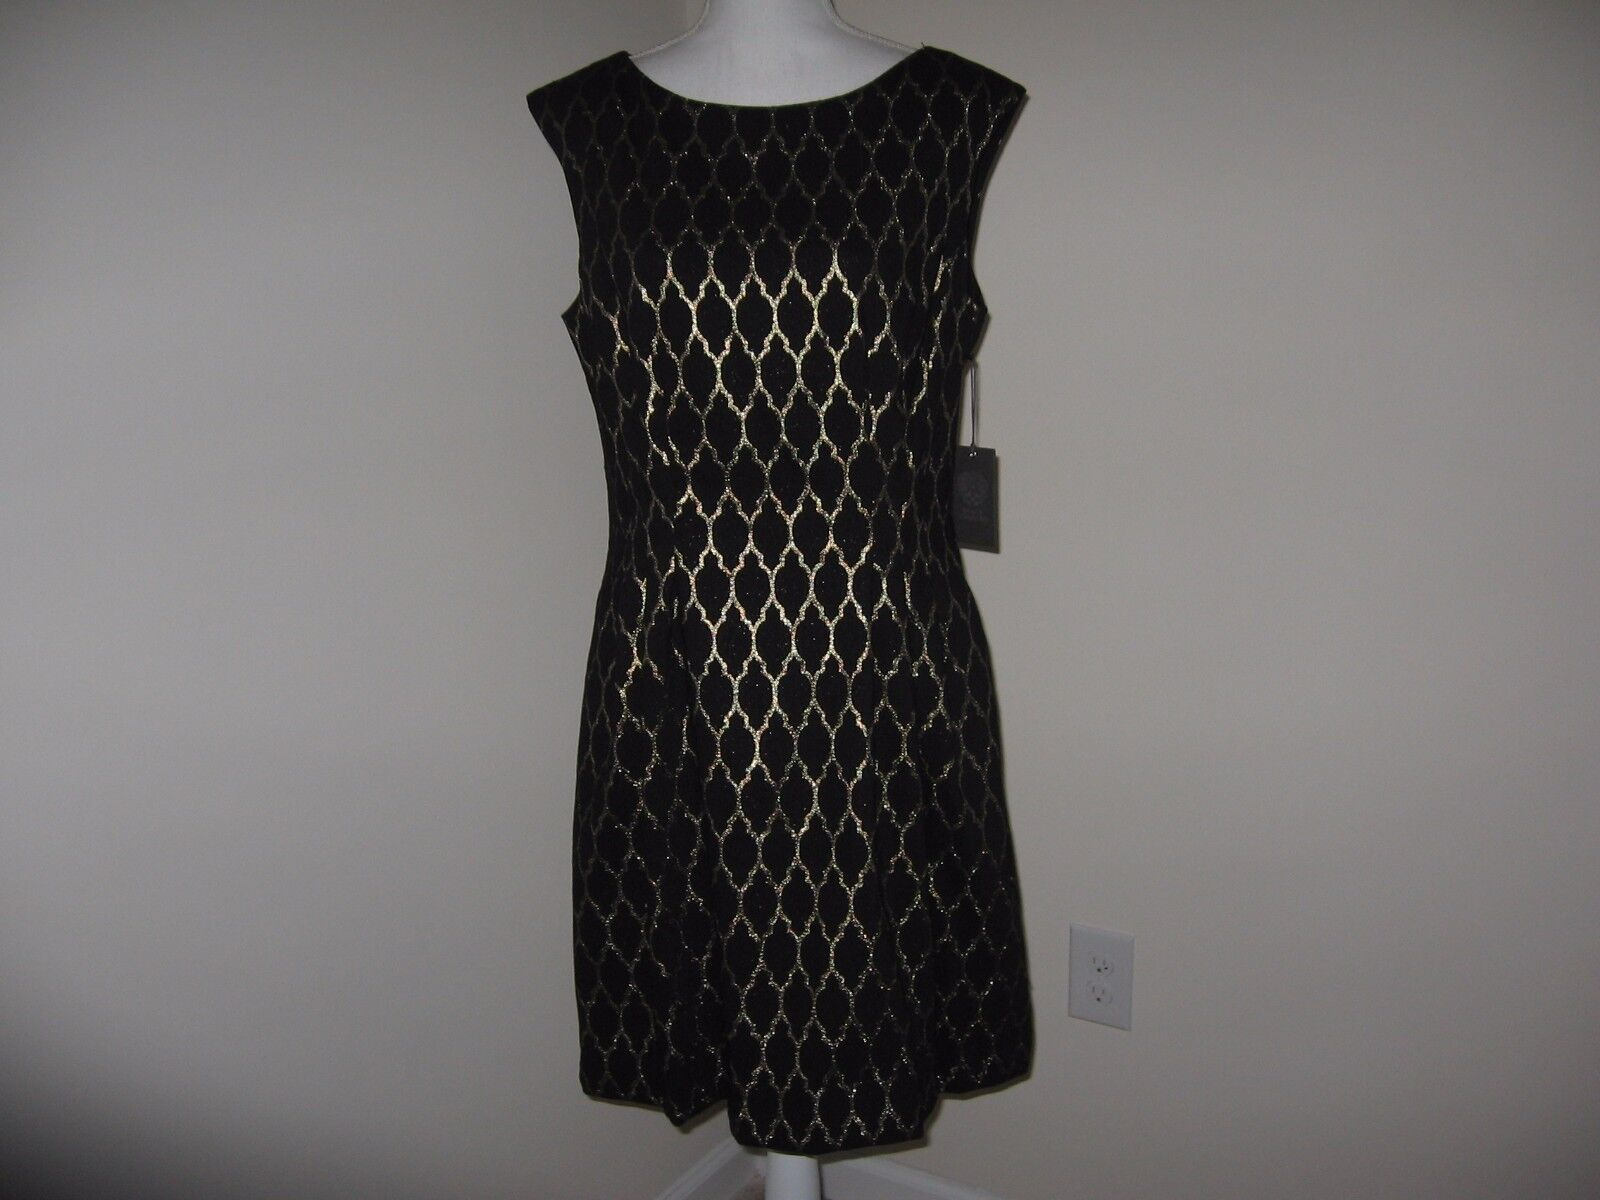 Vince Camuto Metallic Jacquard Fit and Flare Dress for Woman Size 14 NWT